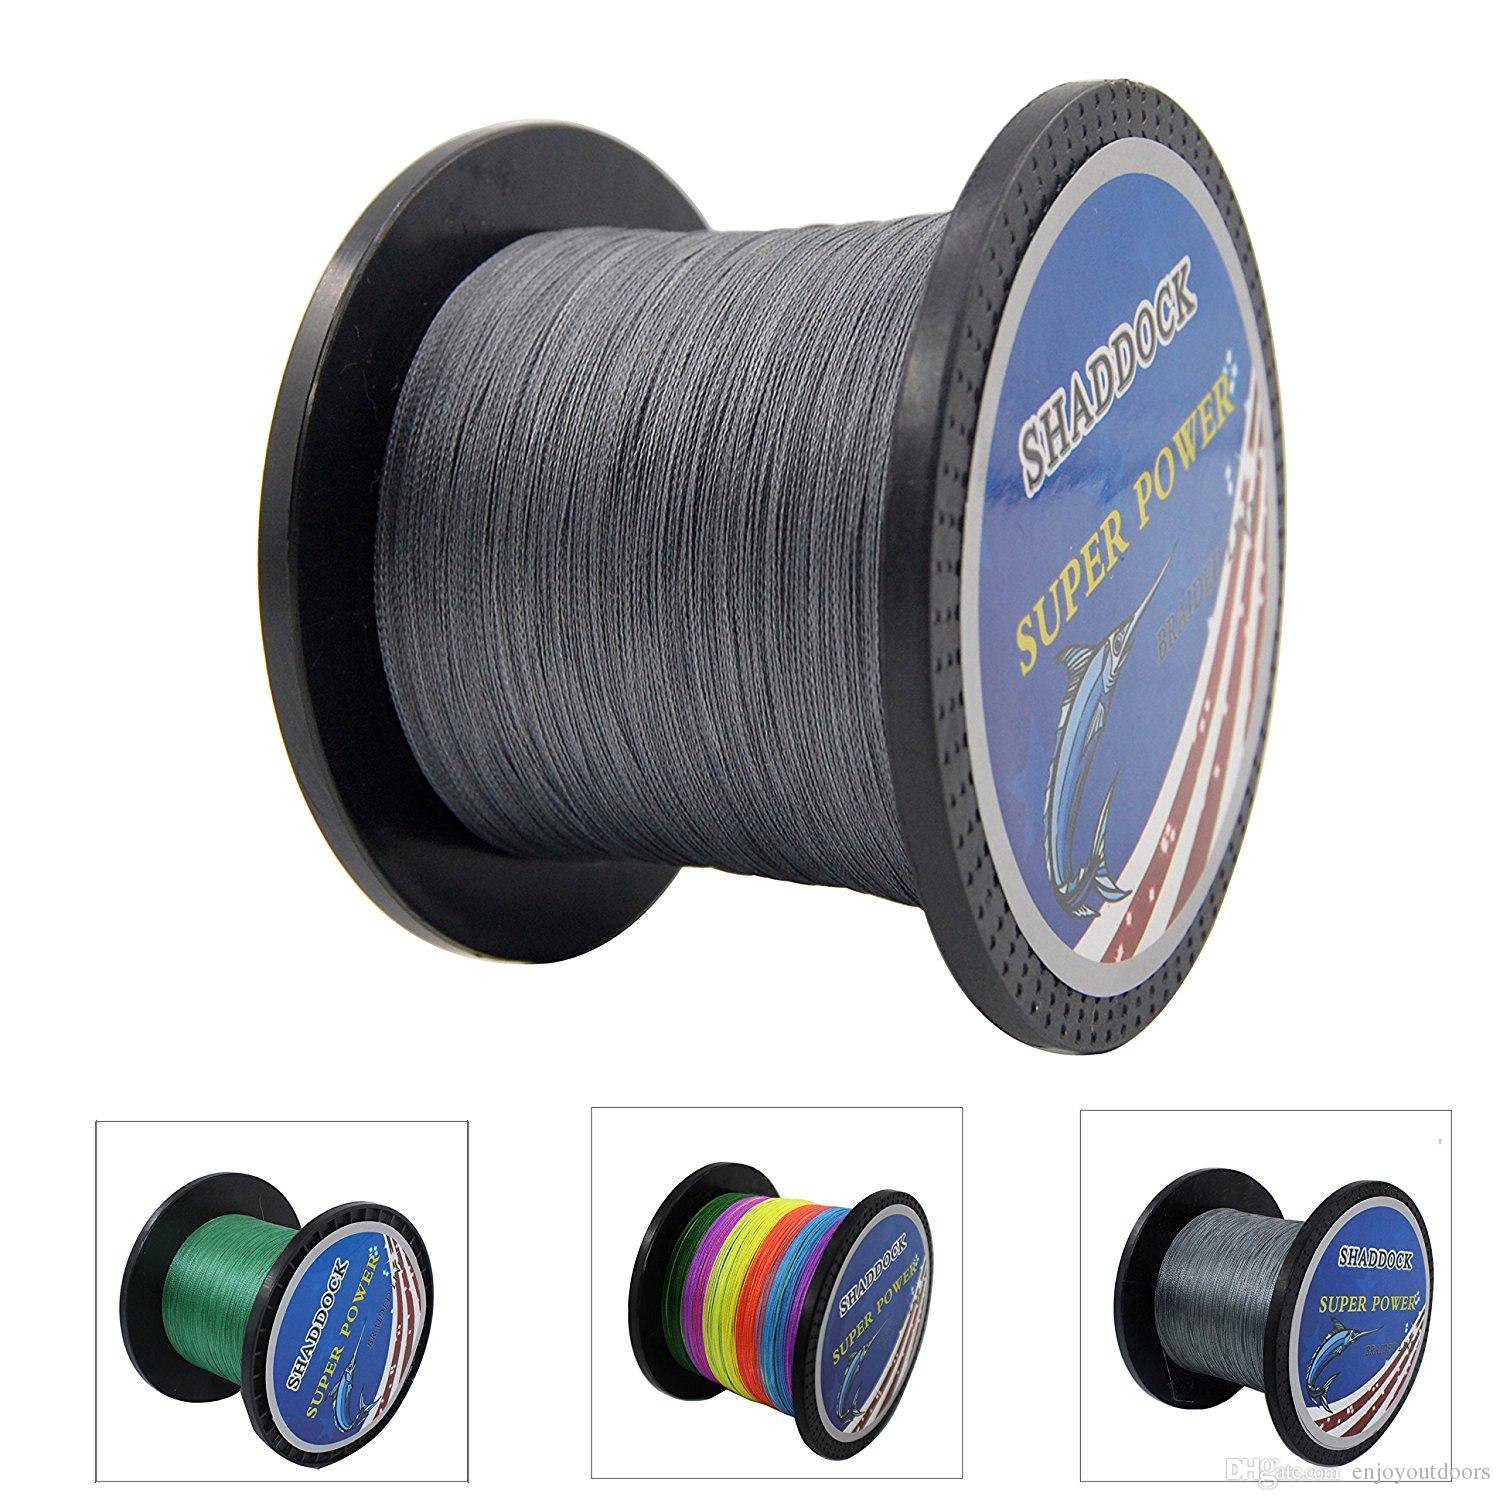 Super Strong Braid Line 30LB 40LB 100% PE Braided Fishing Line 100M 300M 500M 1000M Advanced High-strength Fishing Super line with 4-Strands